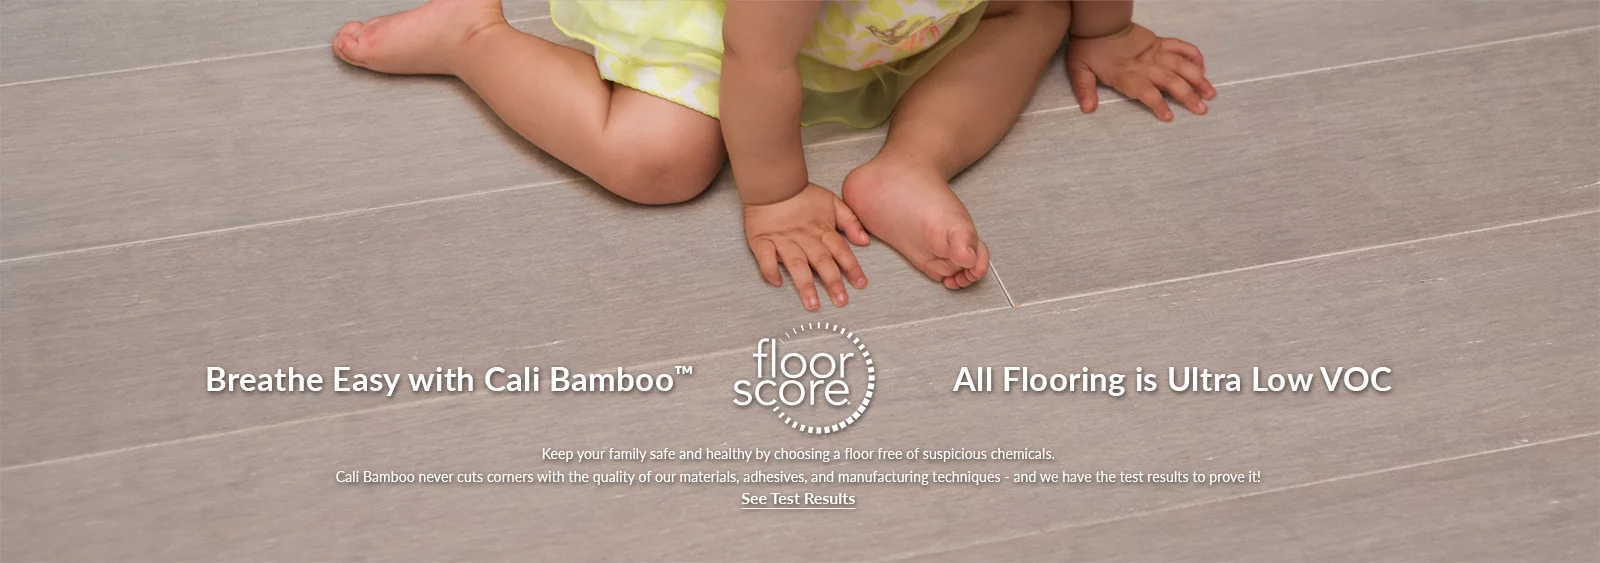 Cali bamboo floor score | Terry's Floor Fashions